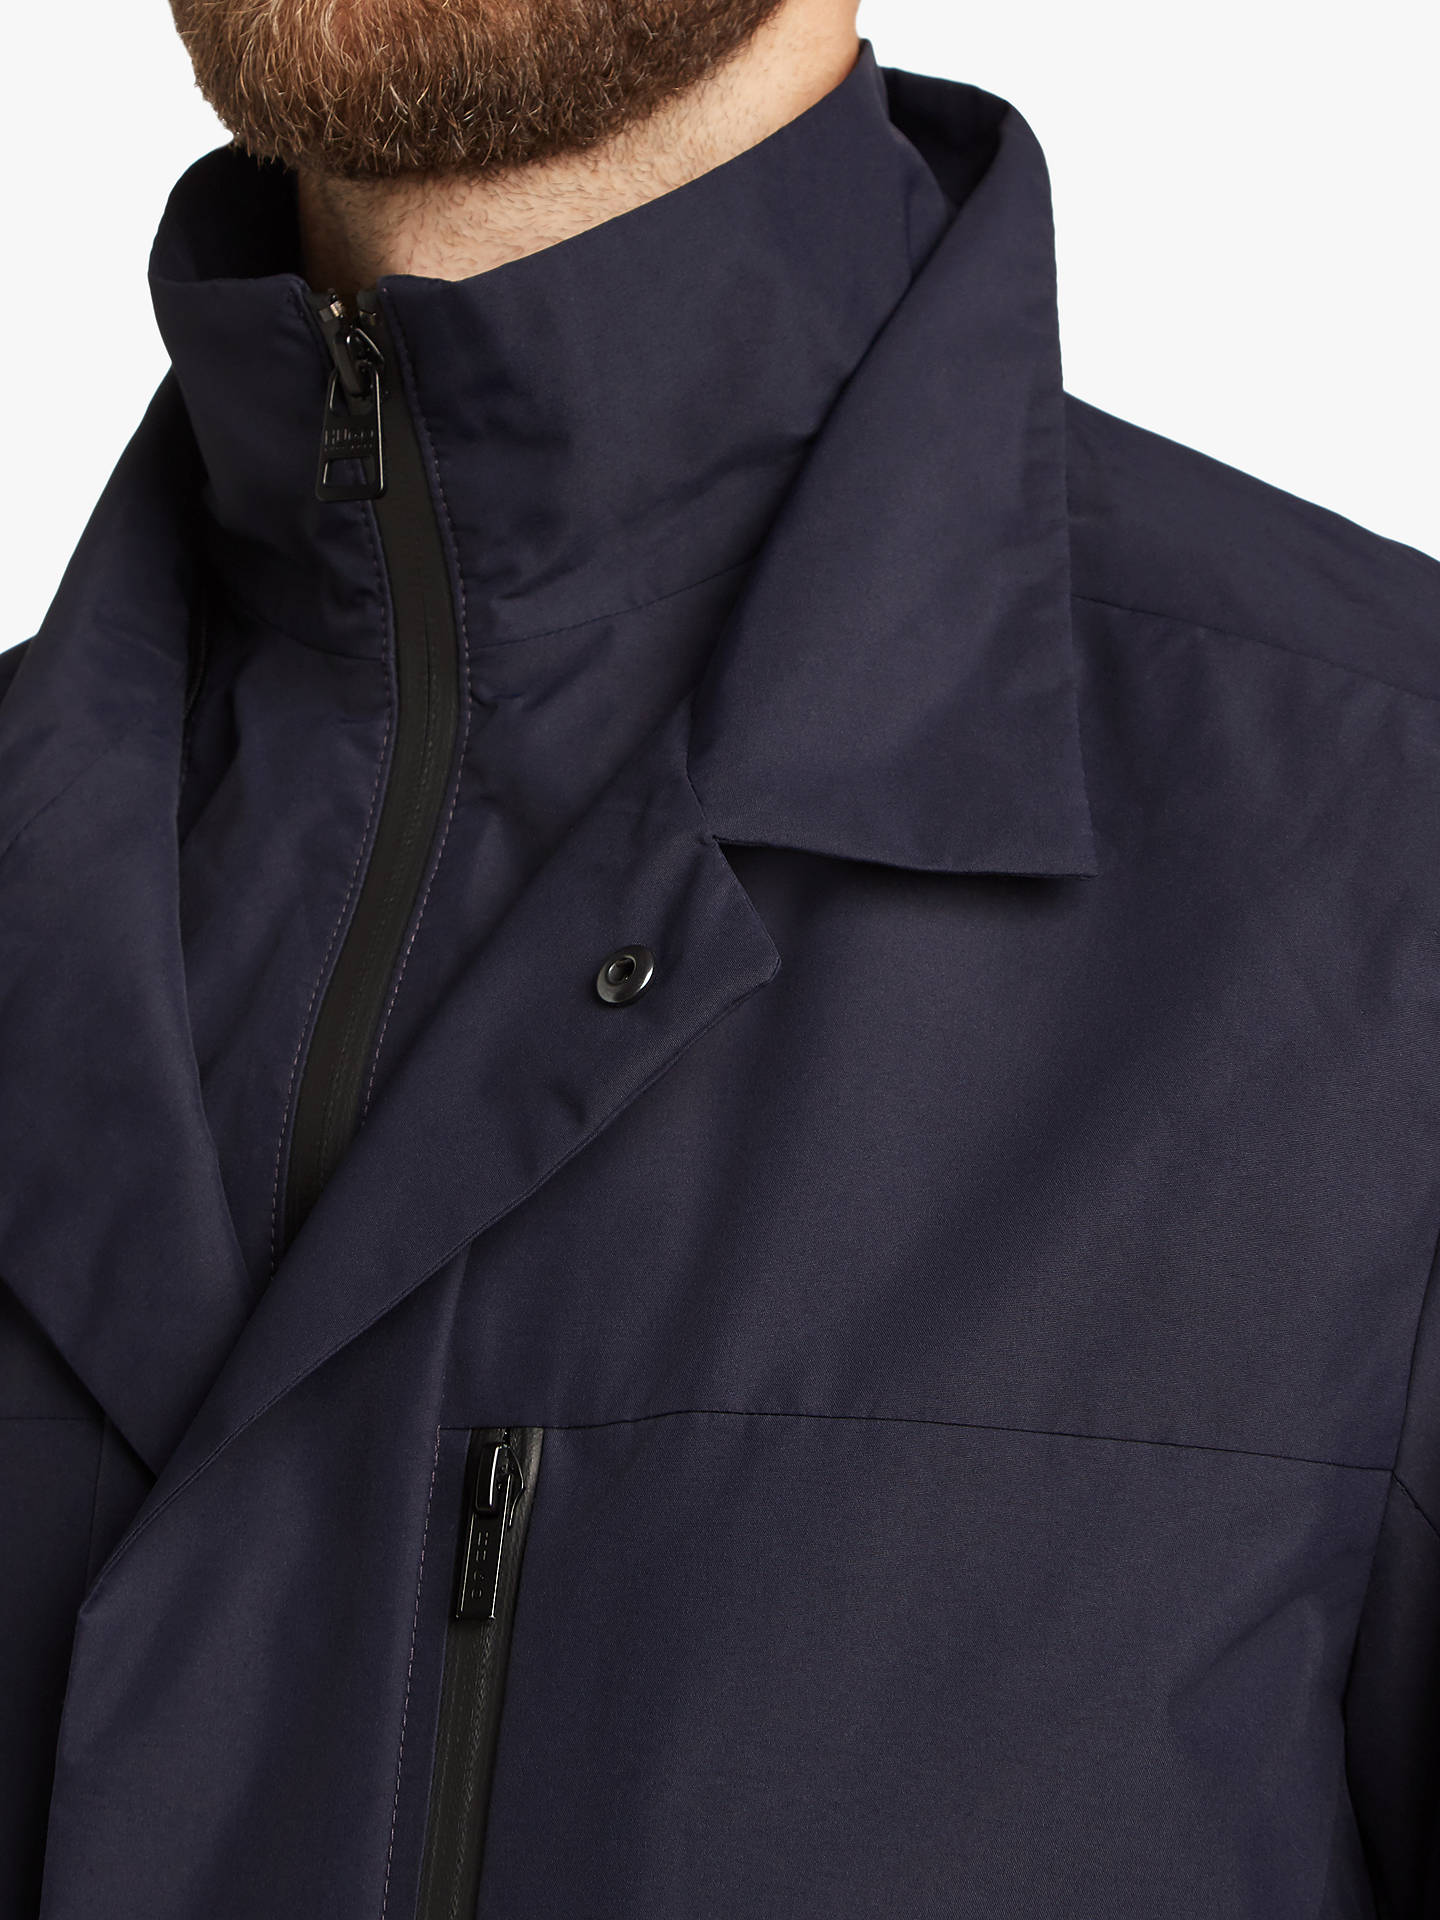 new products new arrive authentic HUGO by Hugo Boss Barelto Water Repellent Detachable Stand ...